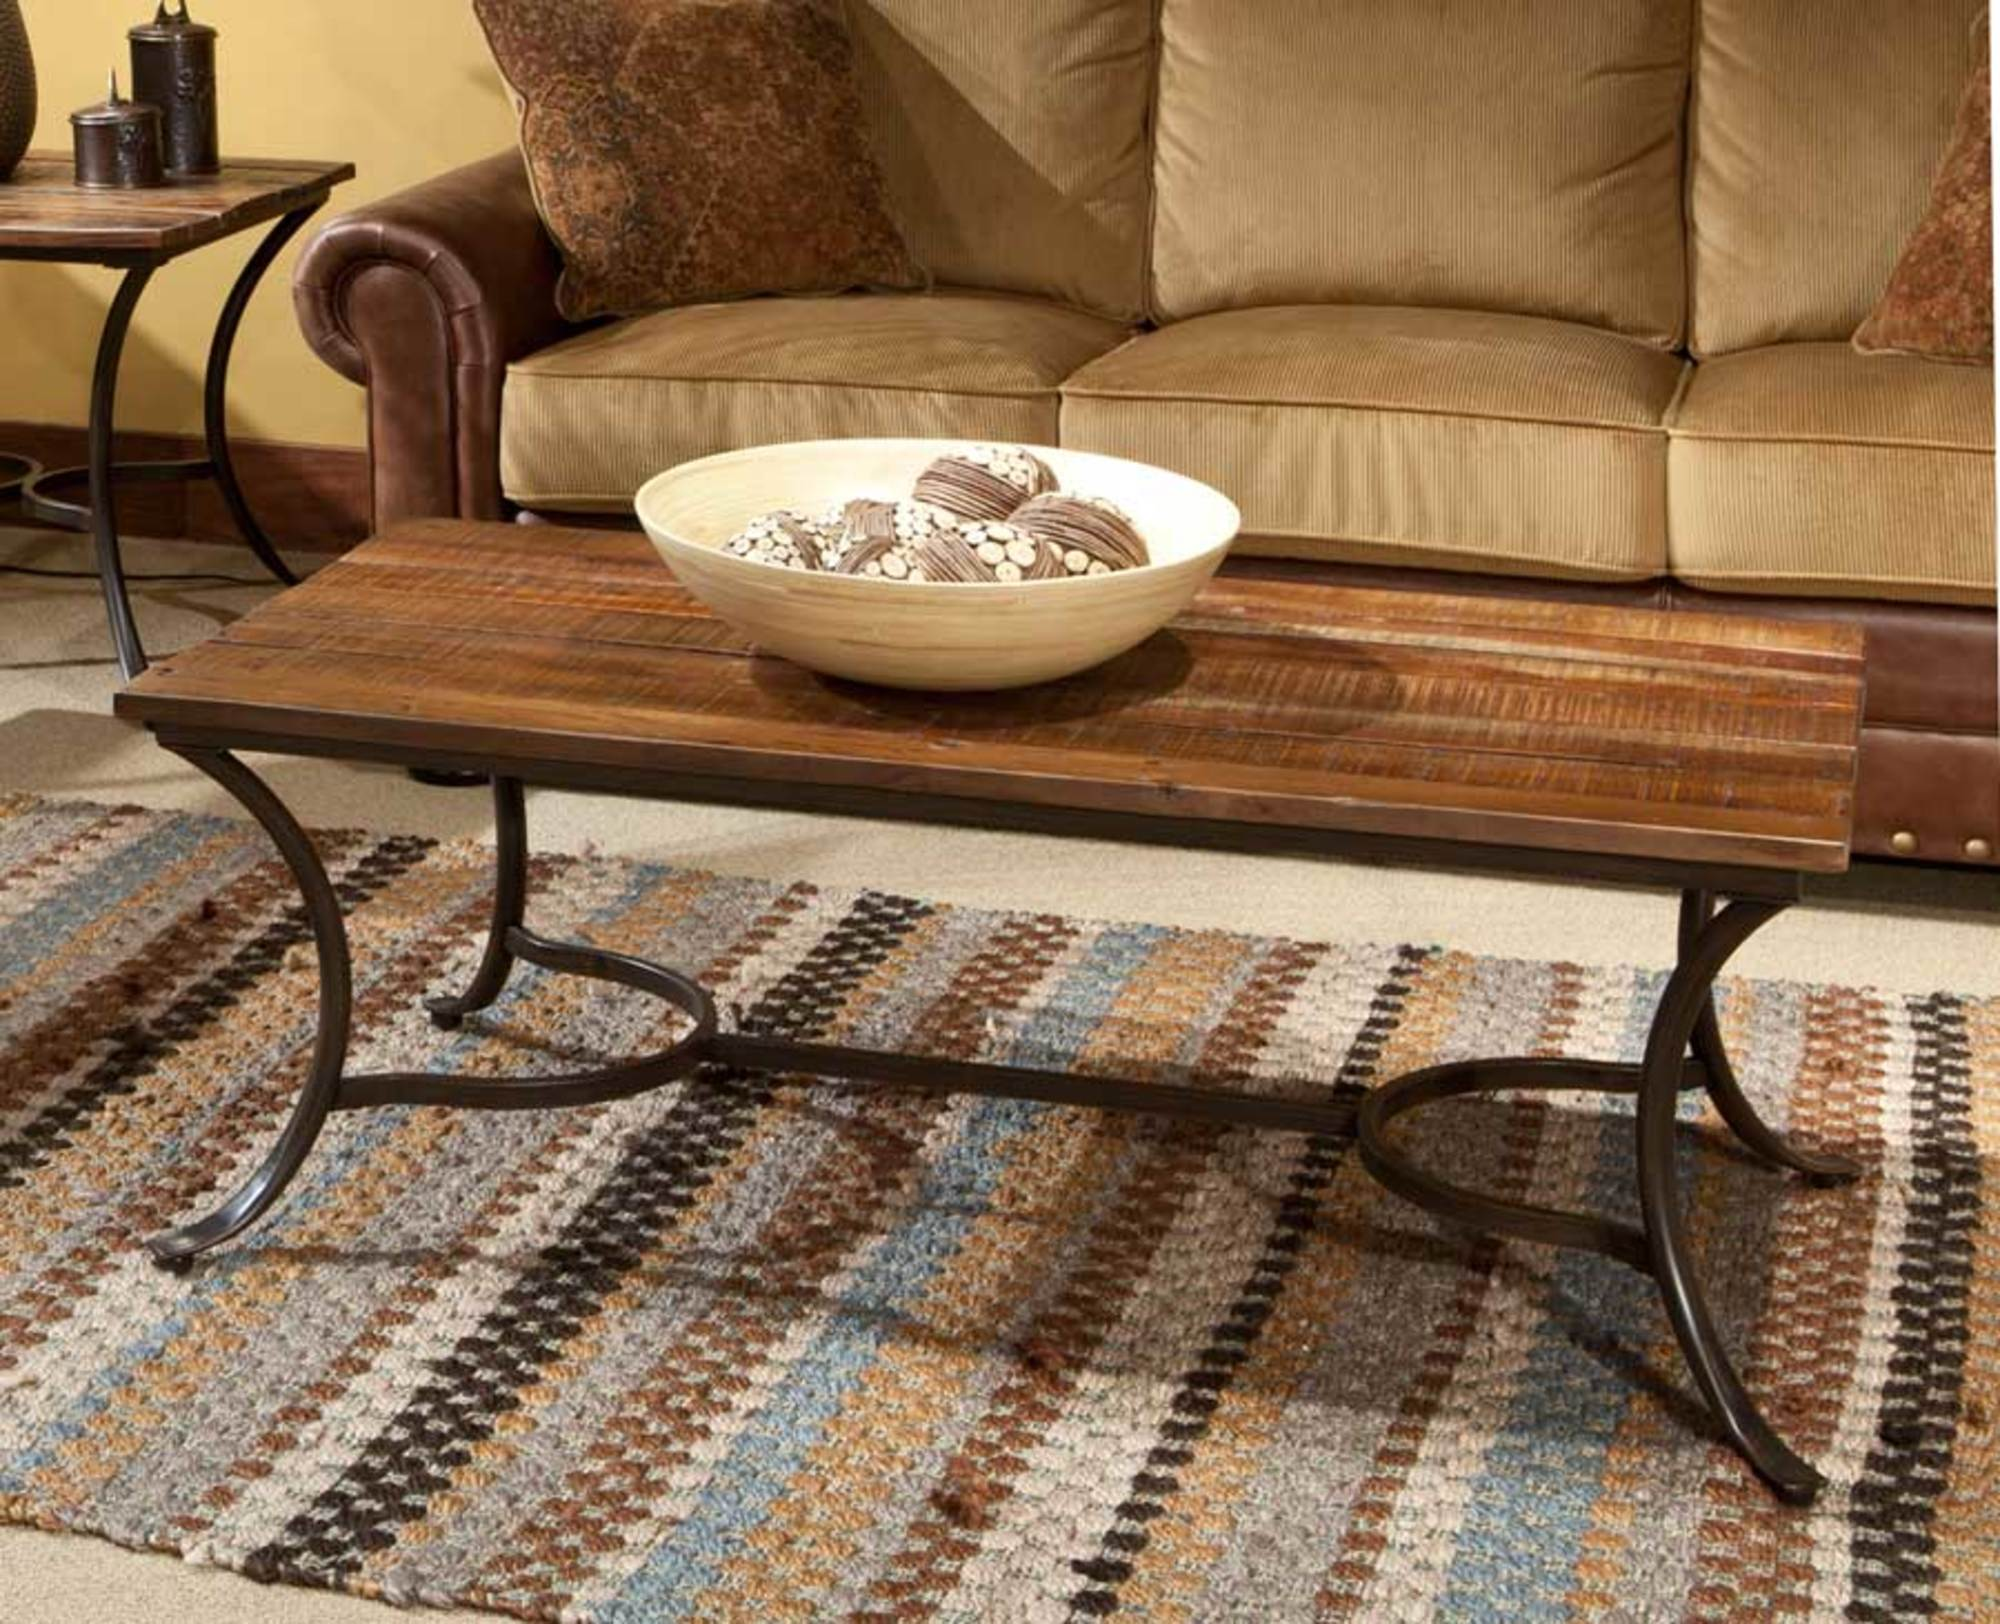 Emerald Home Innsbruck Rectangle Cocktail Table Medium Brown T4720 by Emerald Home Furnishings, LLC